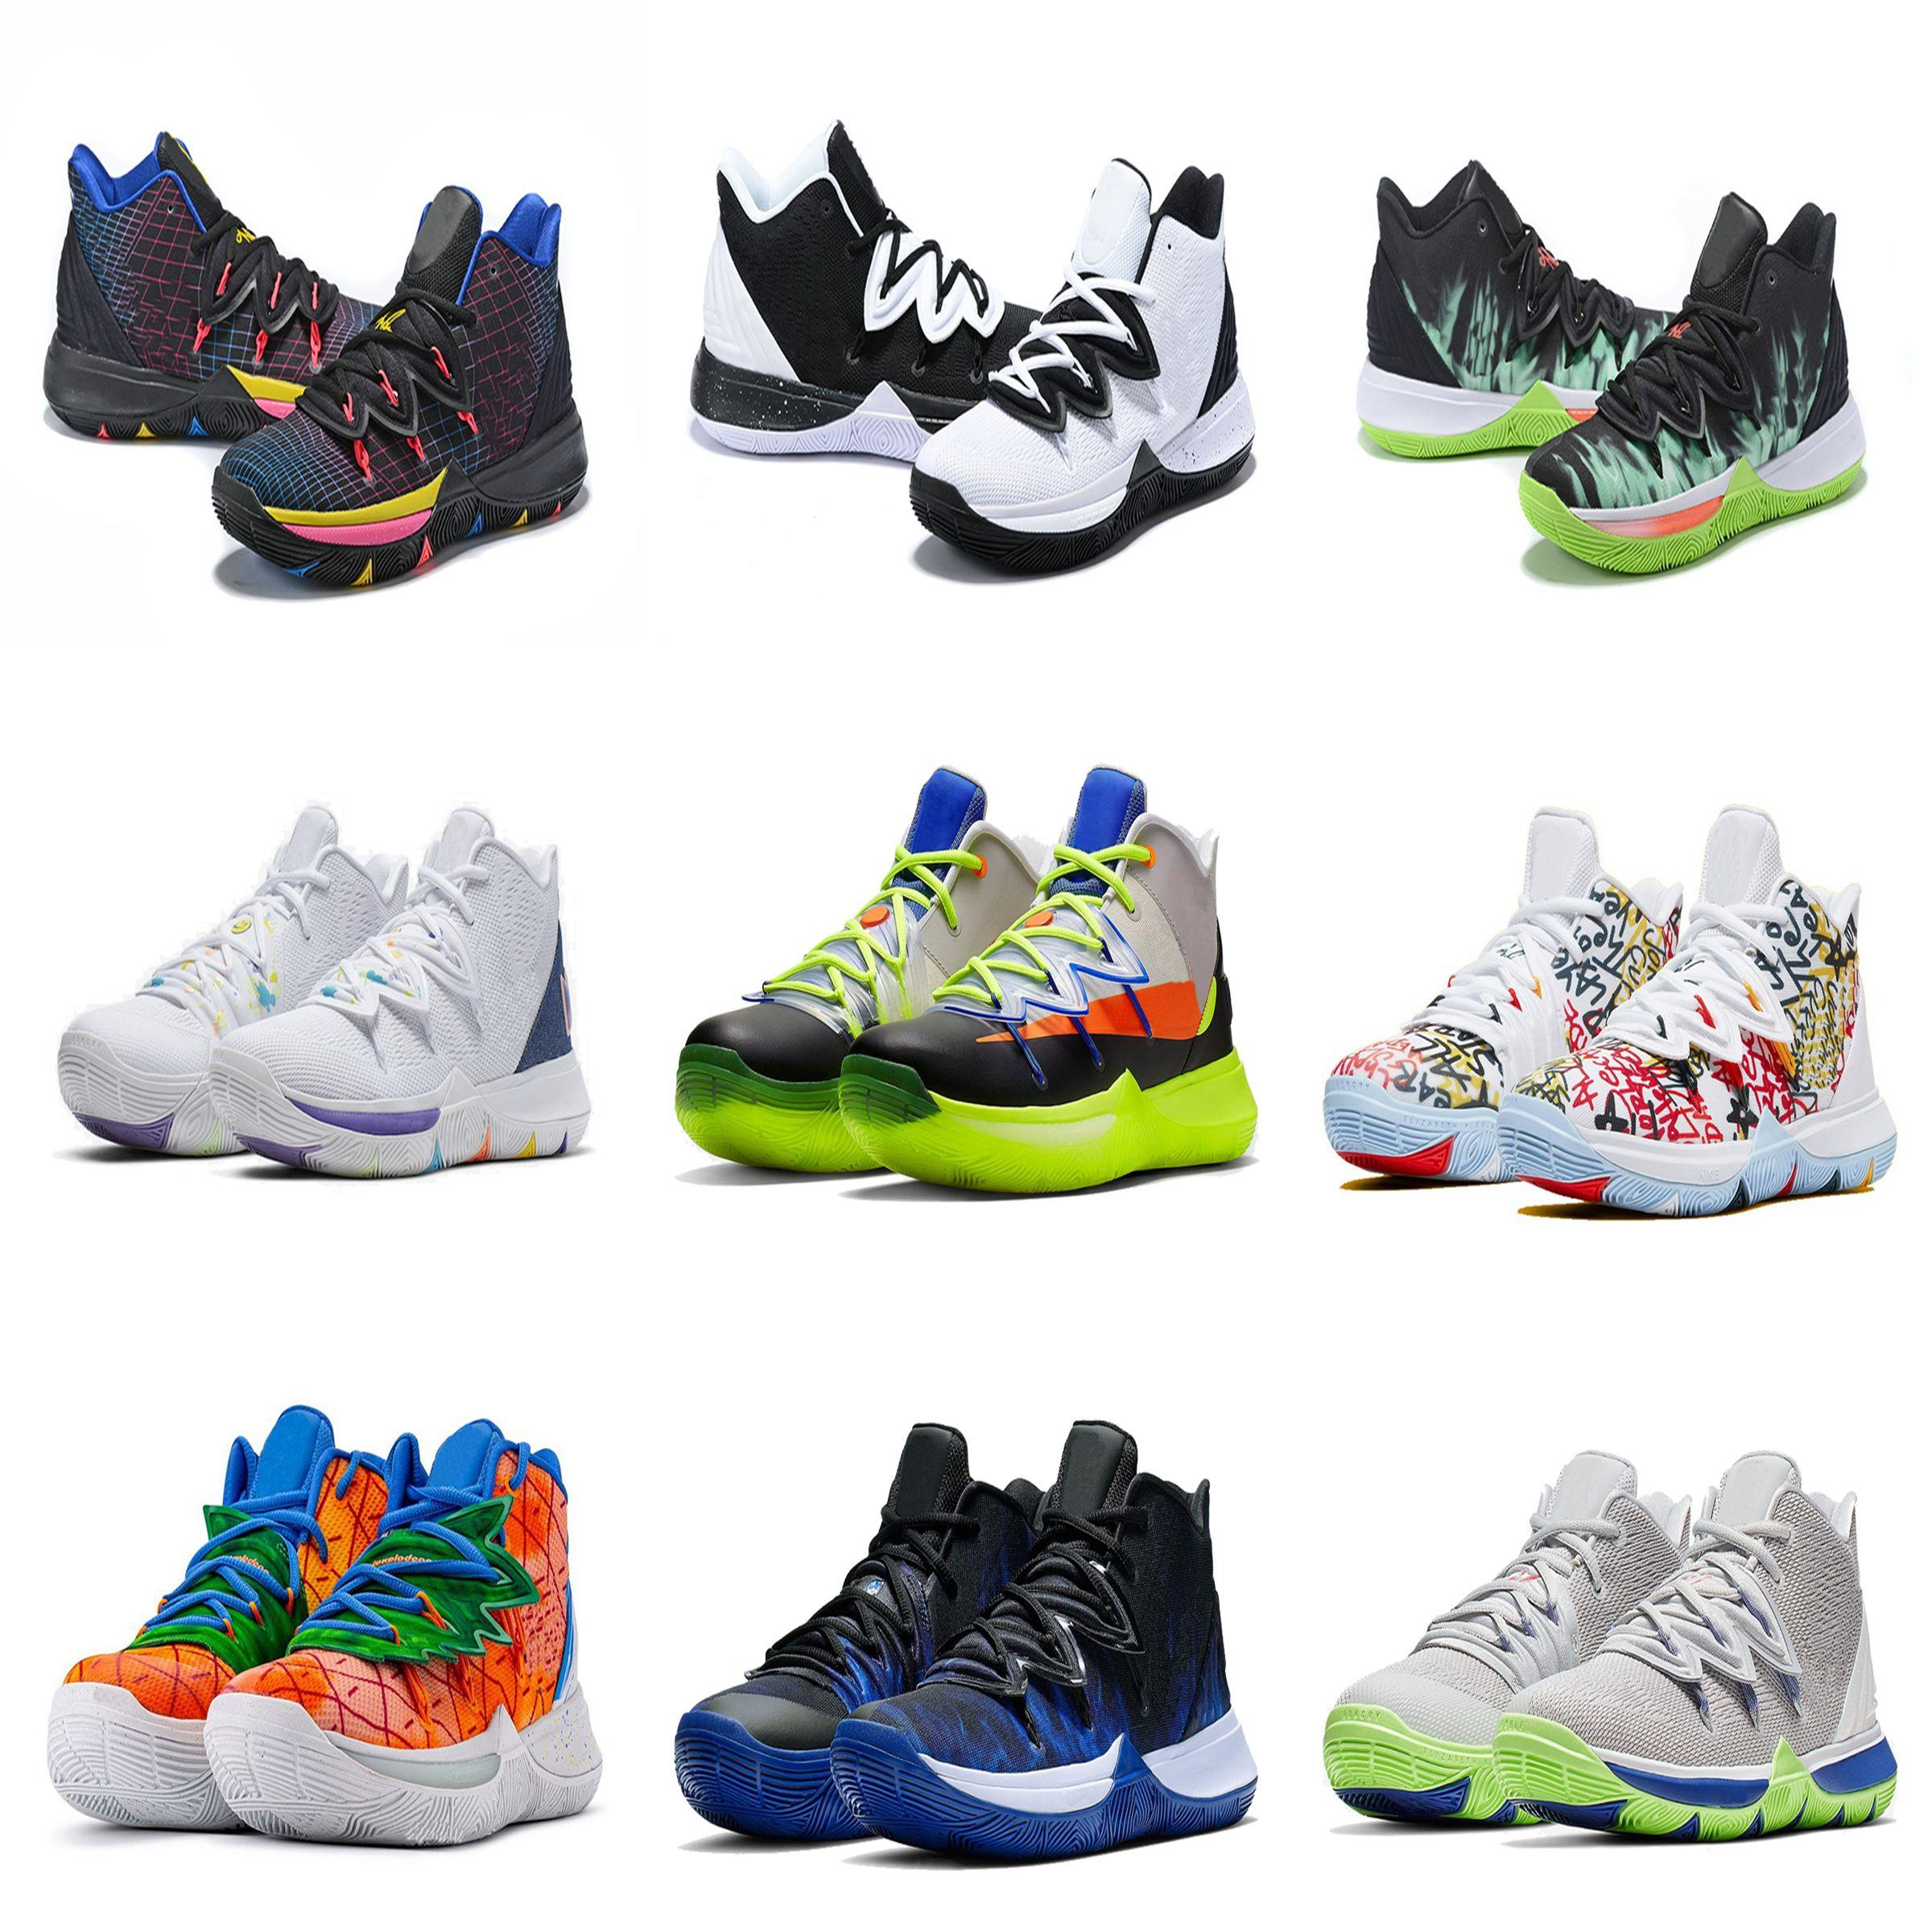 2020 New Kyrie 5 Graffiti Shoes Sales